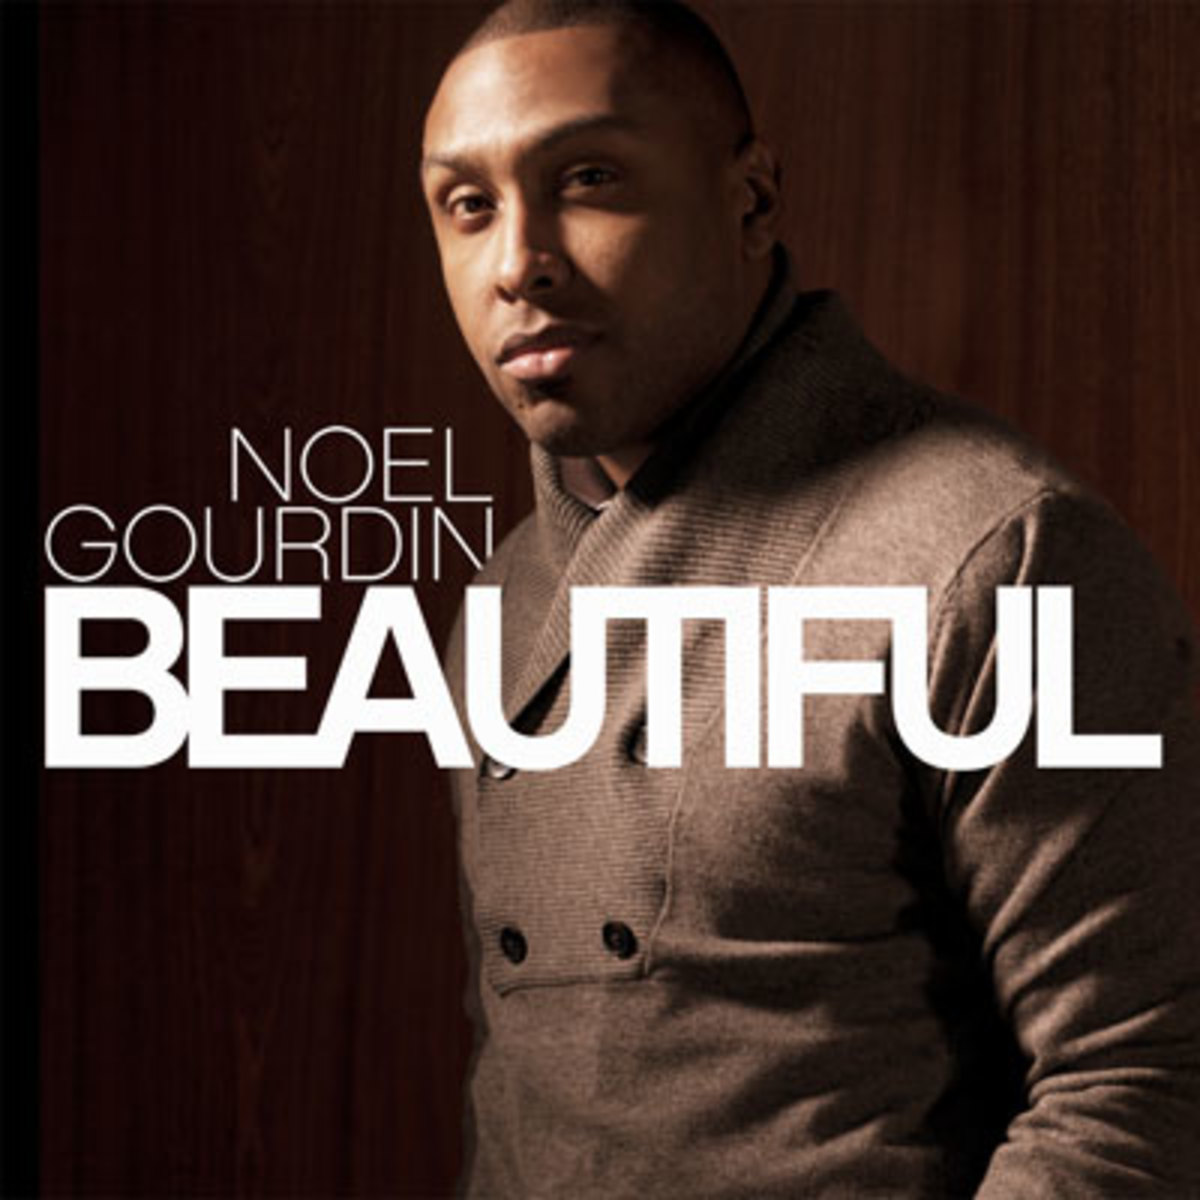 noelgourdin-beautiful.jpg